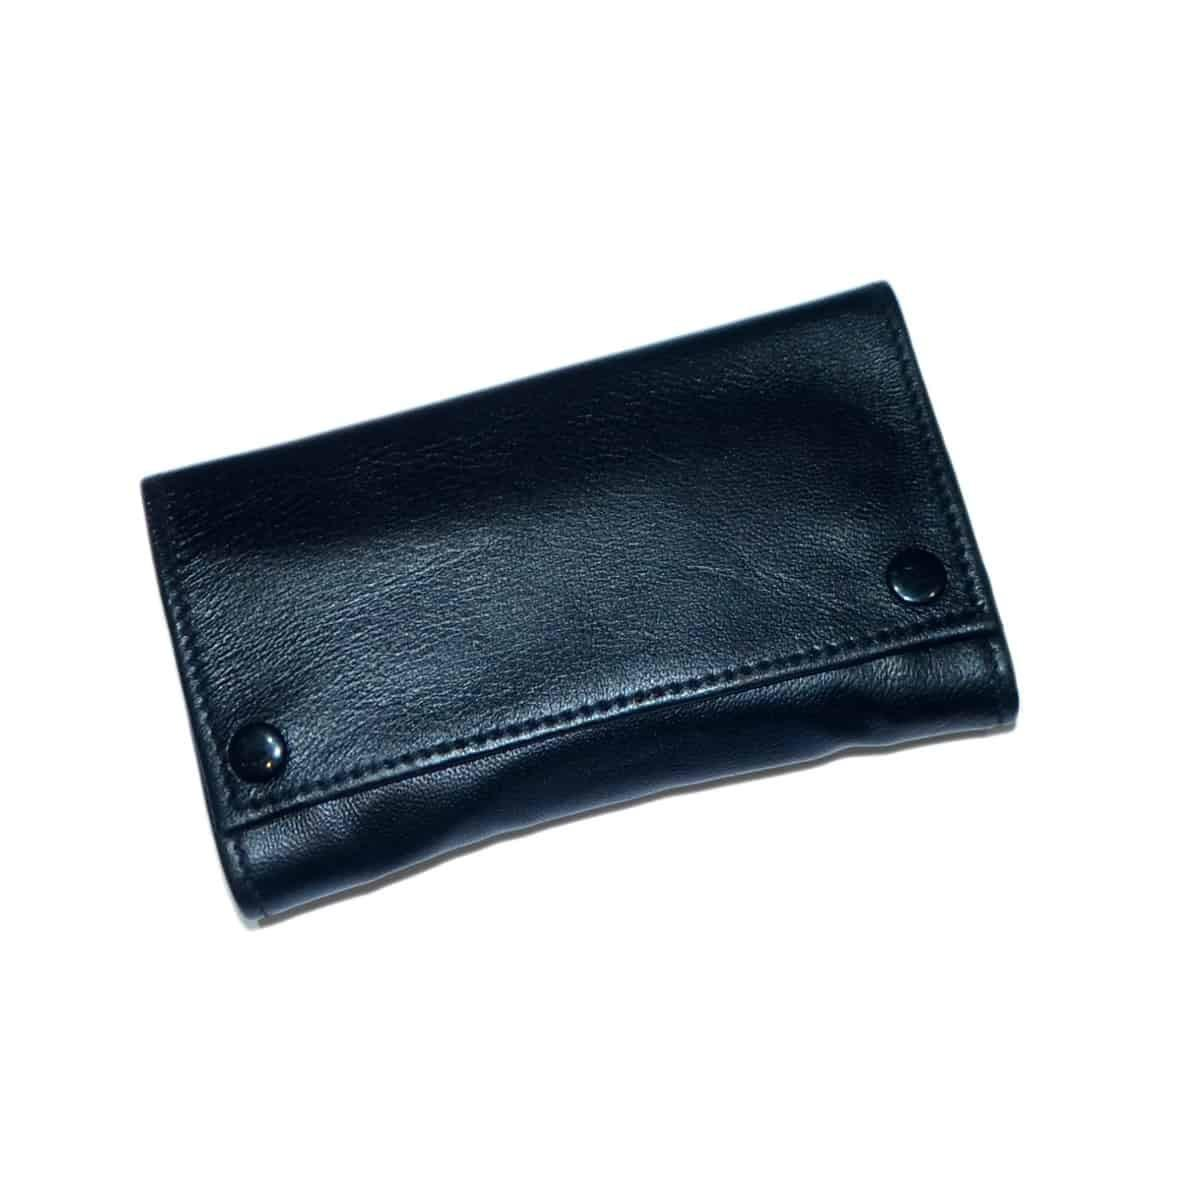 13 Dr Plumb Double Fold Snap Tobacco Pouch 3.jpg